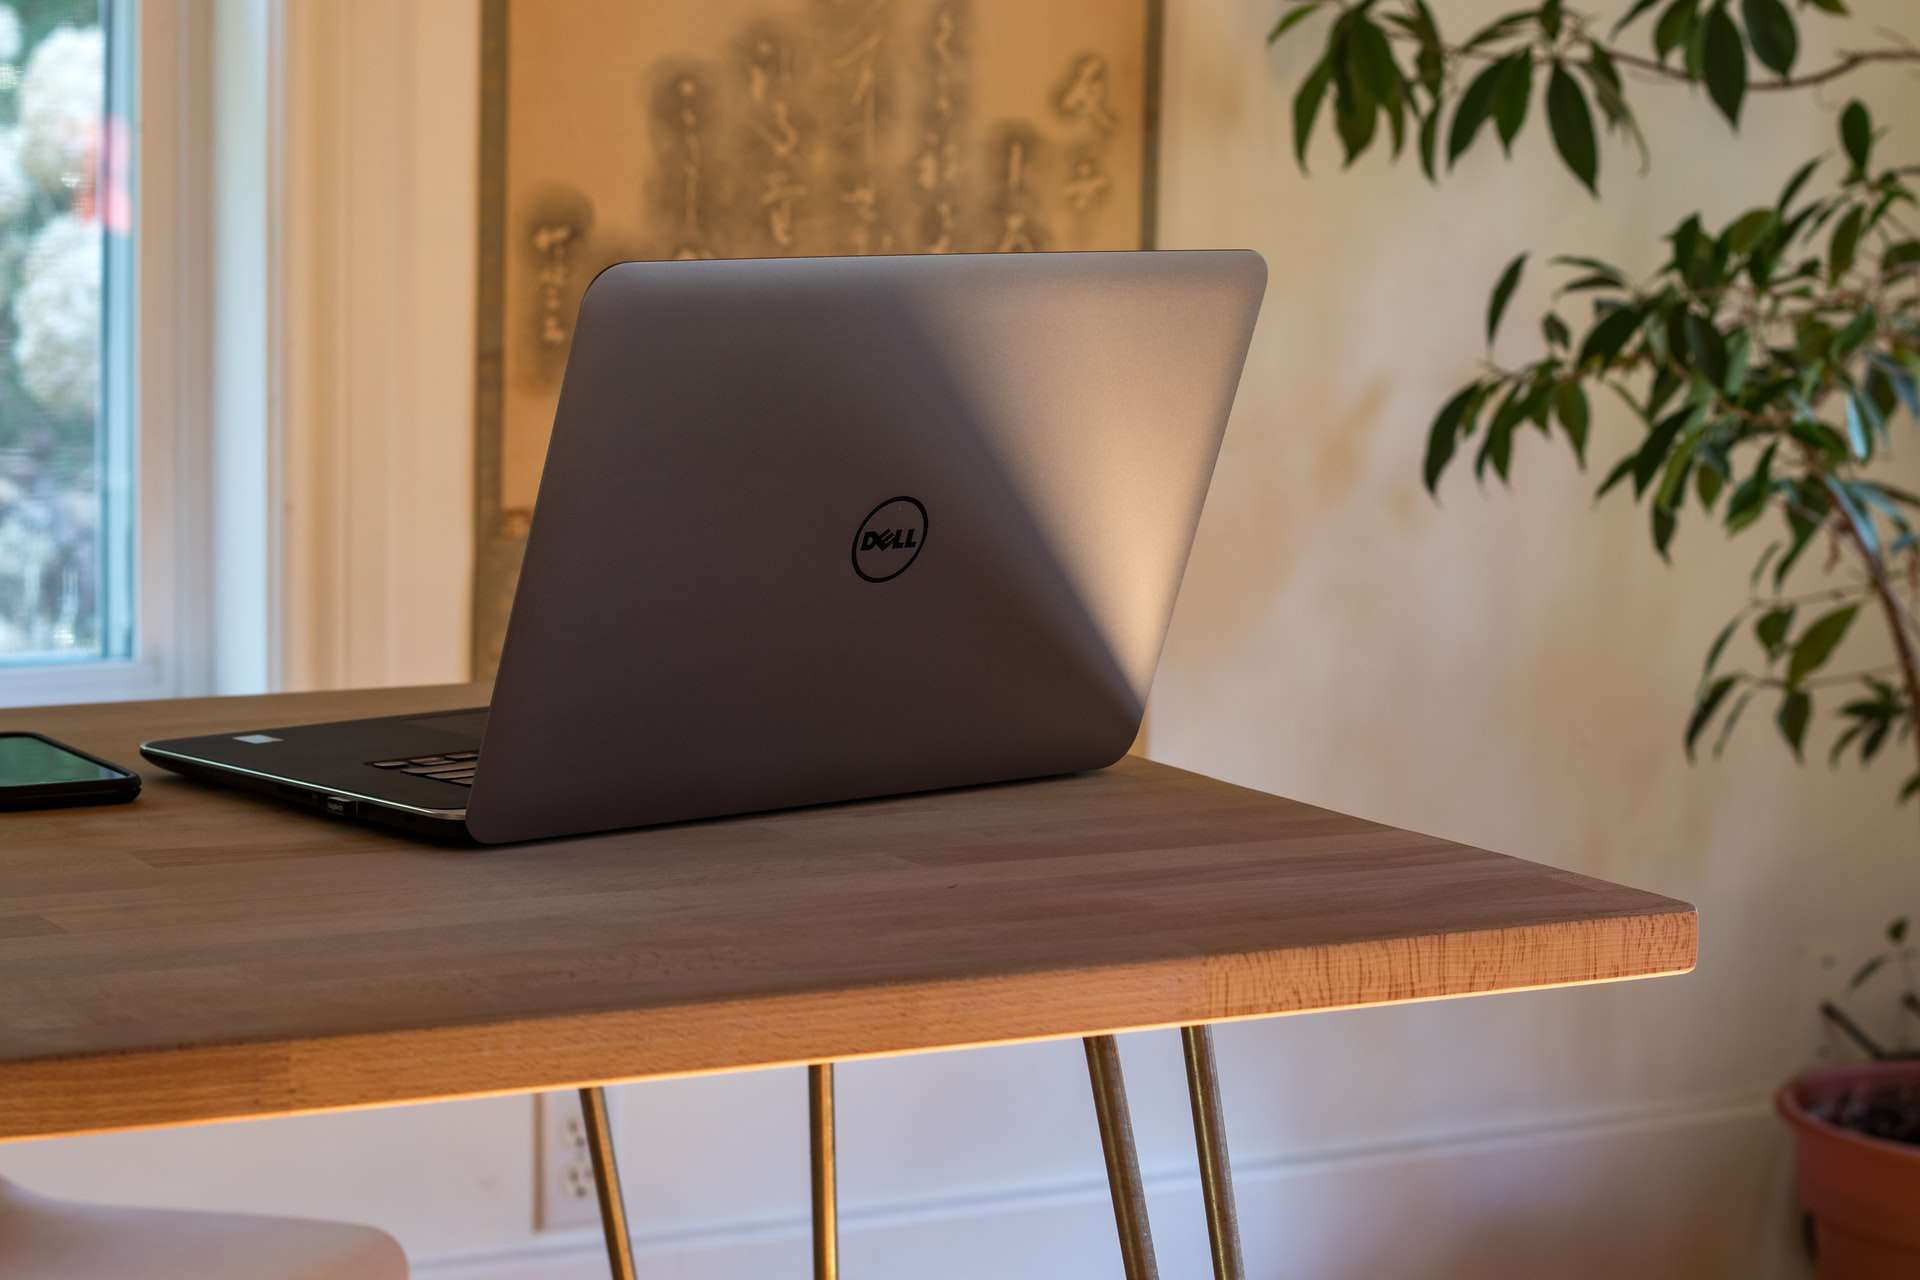 A Dell laptop sits on a desk